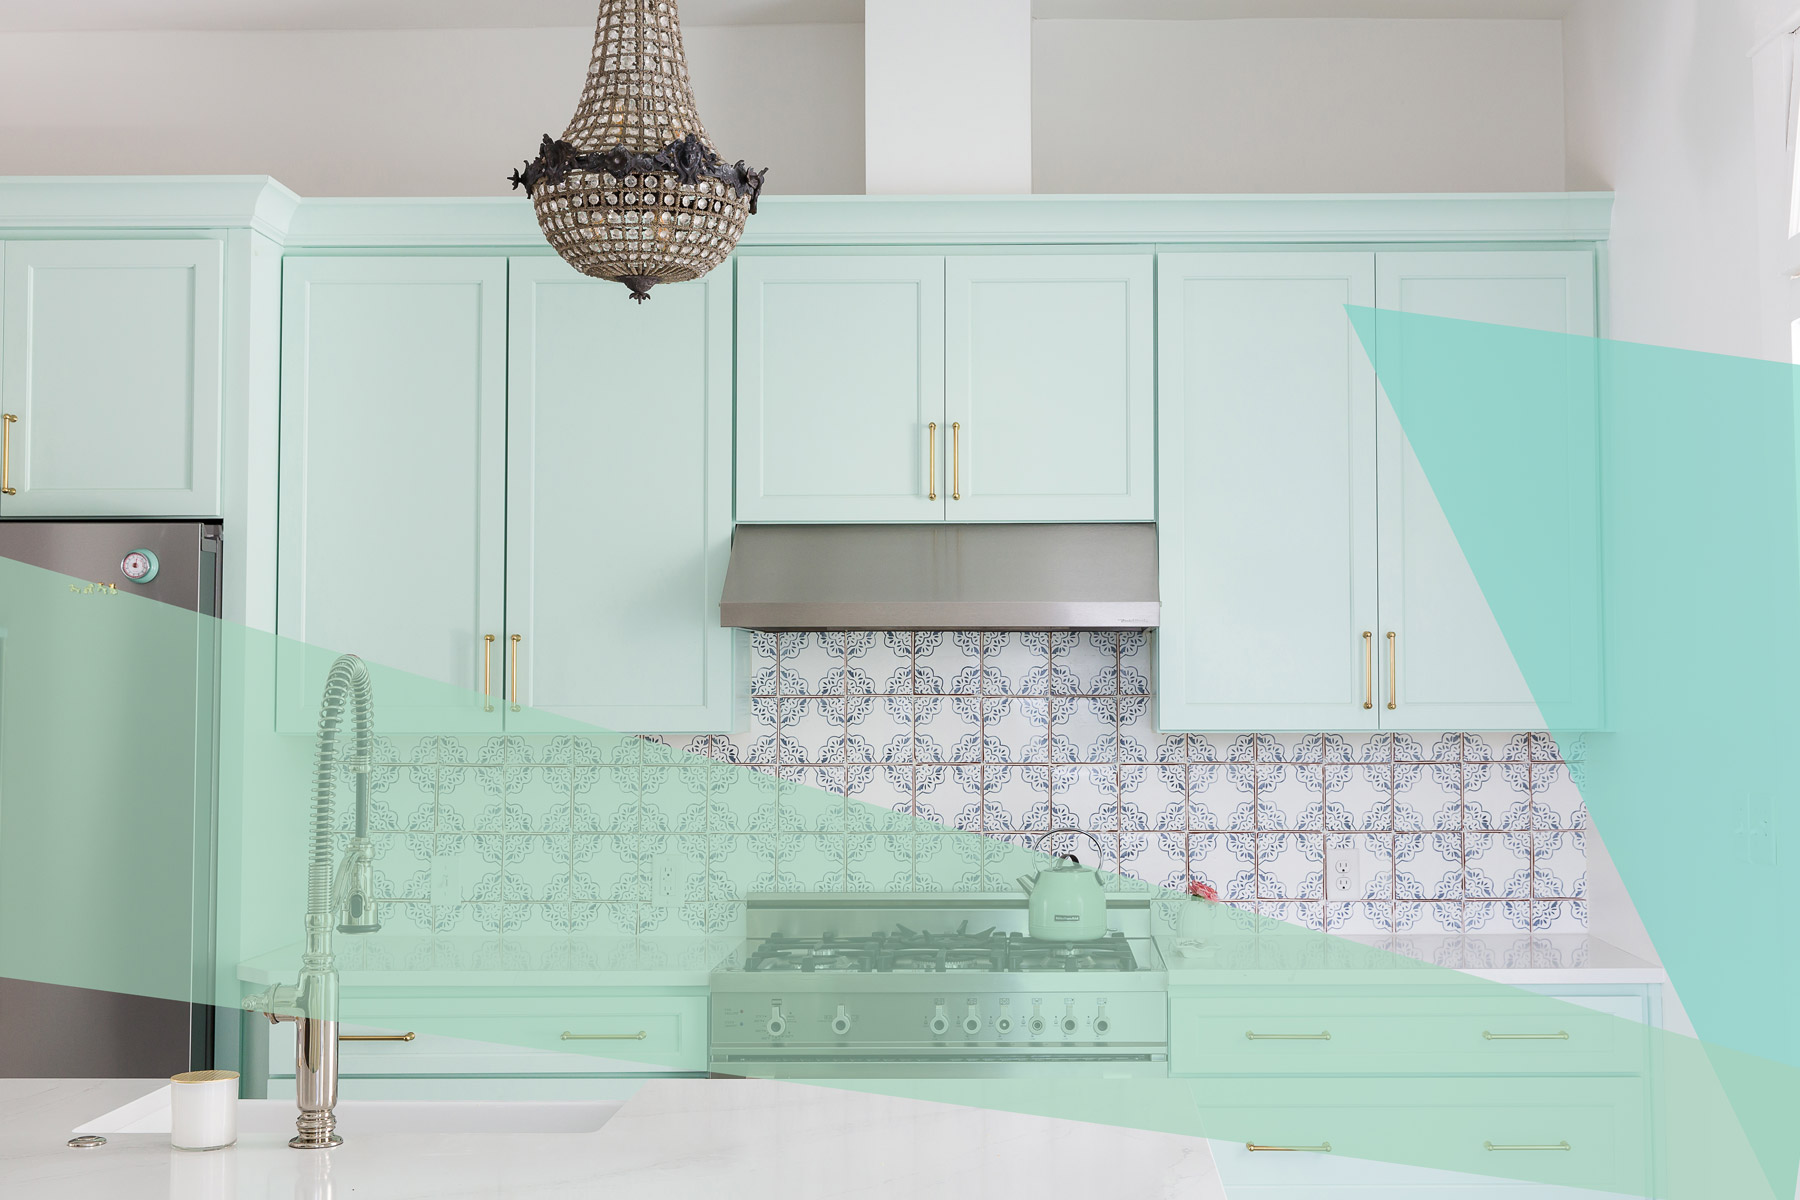 Kitchen cabinet paint colors - mint green paint cabinets by Maureen Stevens